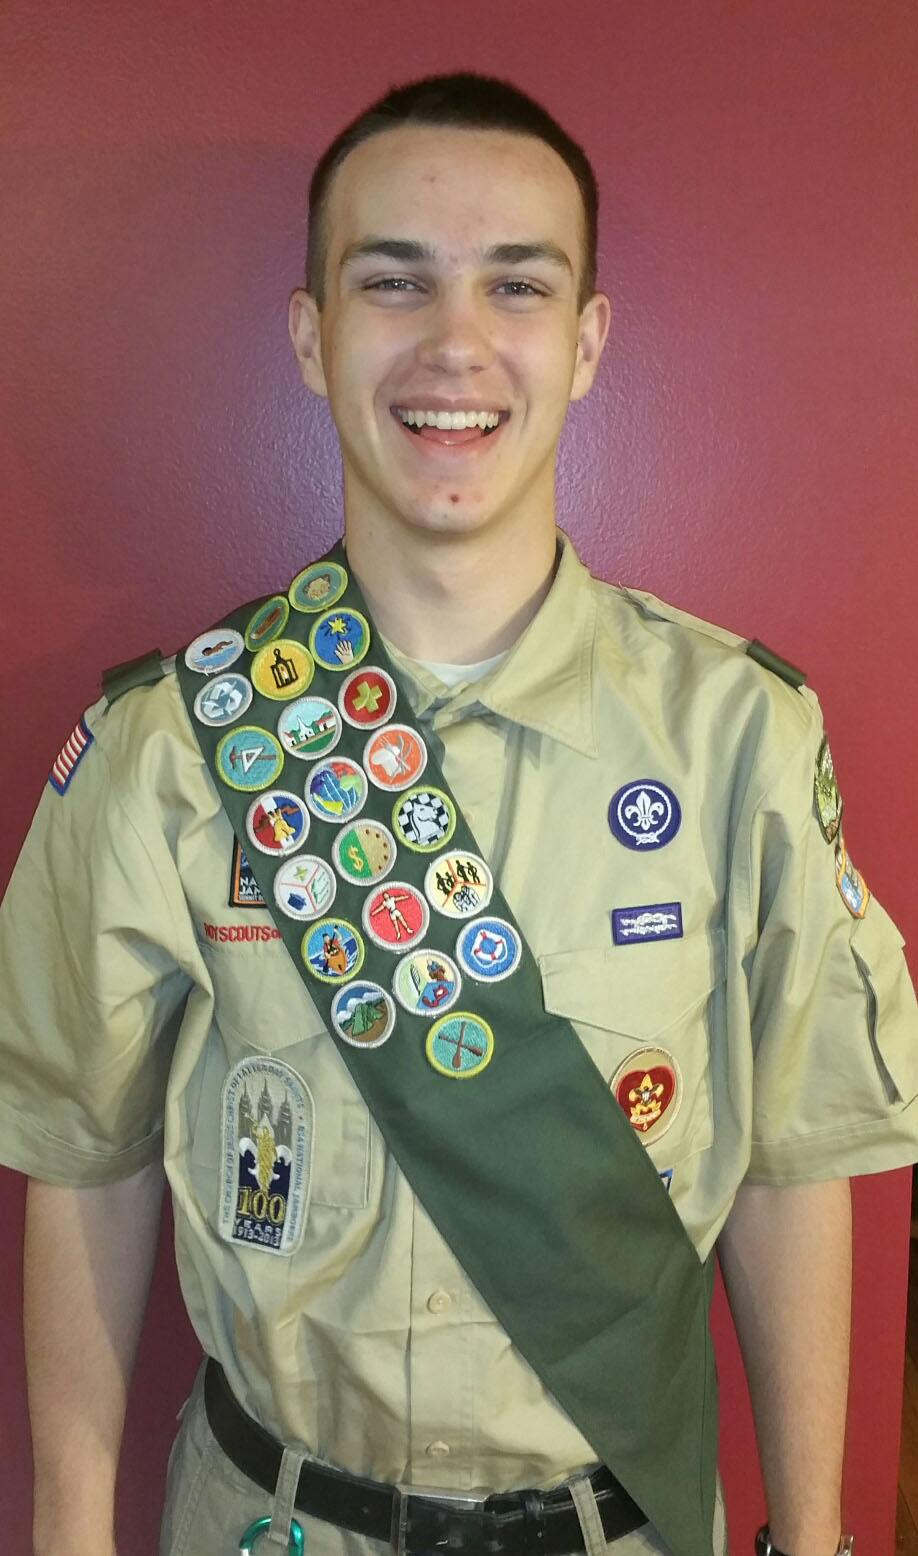 Willowbrook senior earns Eagle Scout status